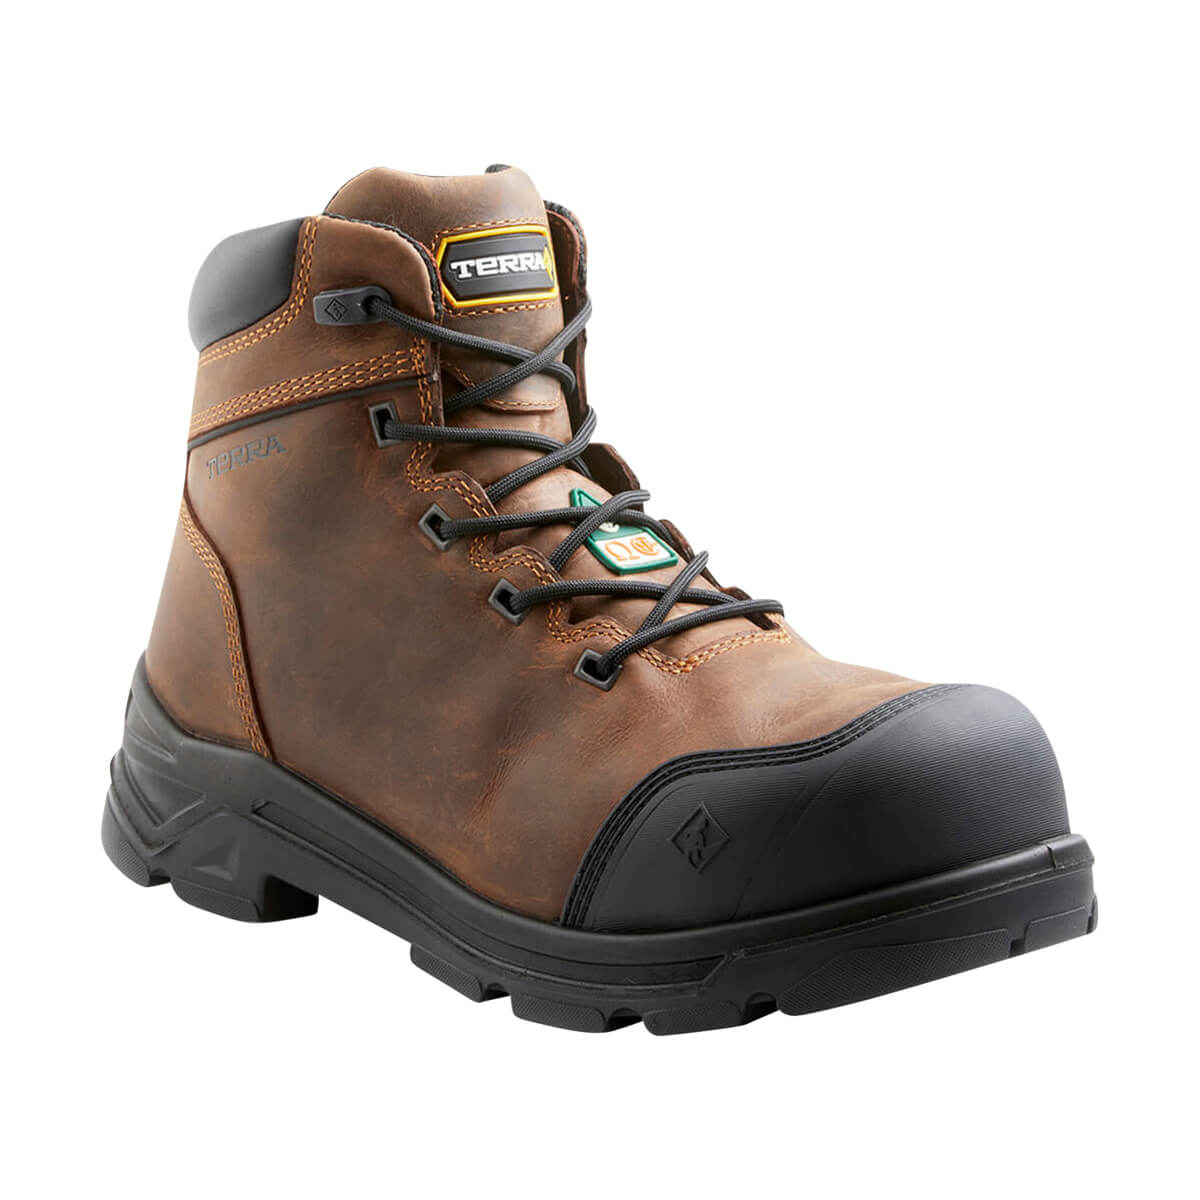 Terra Vertex 6000 Boot - Brown